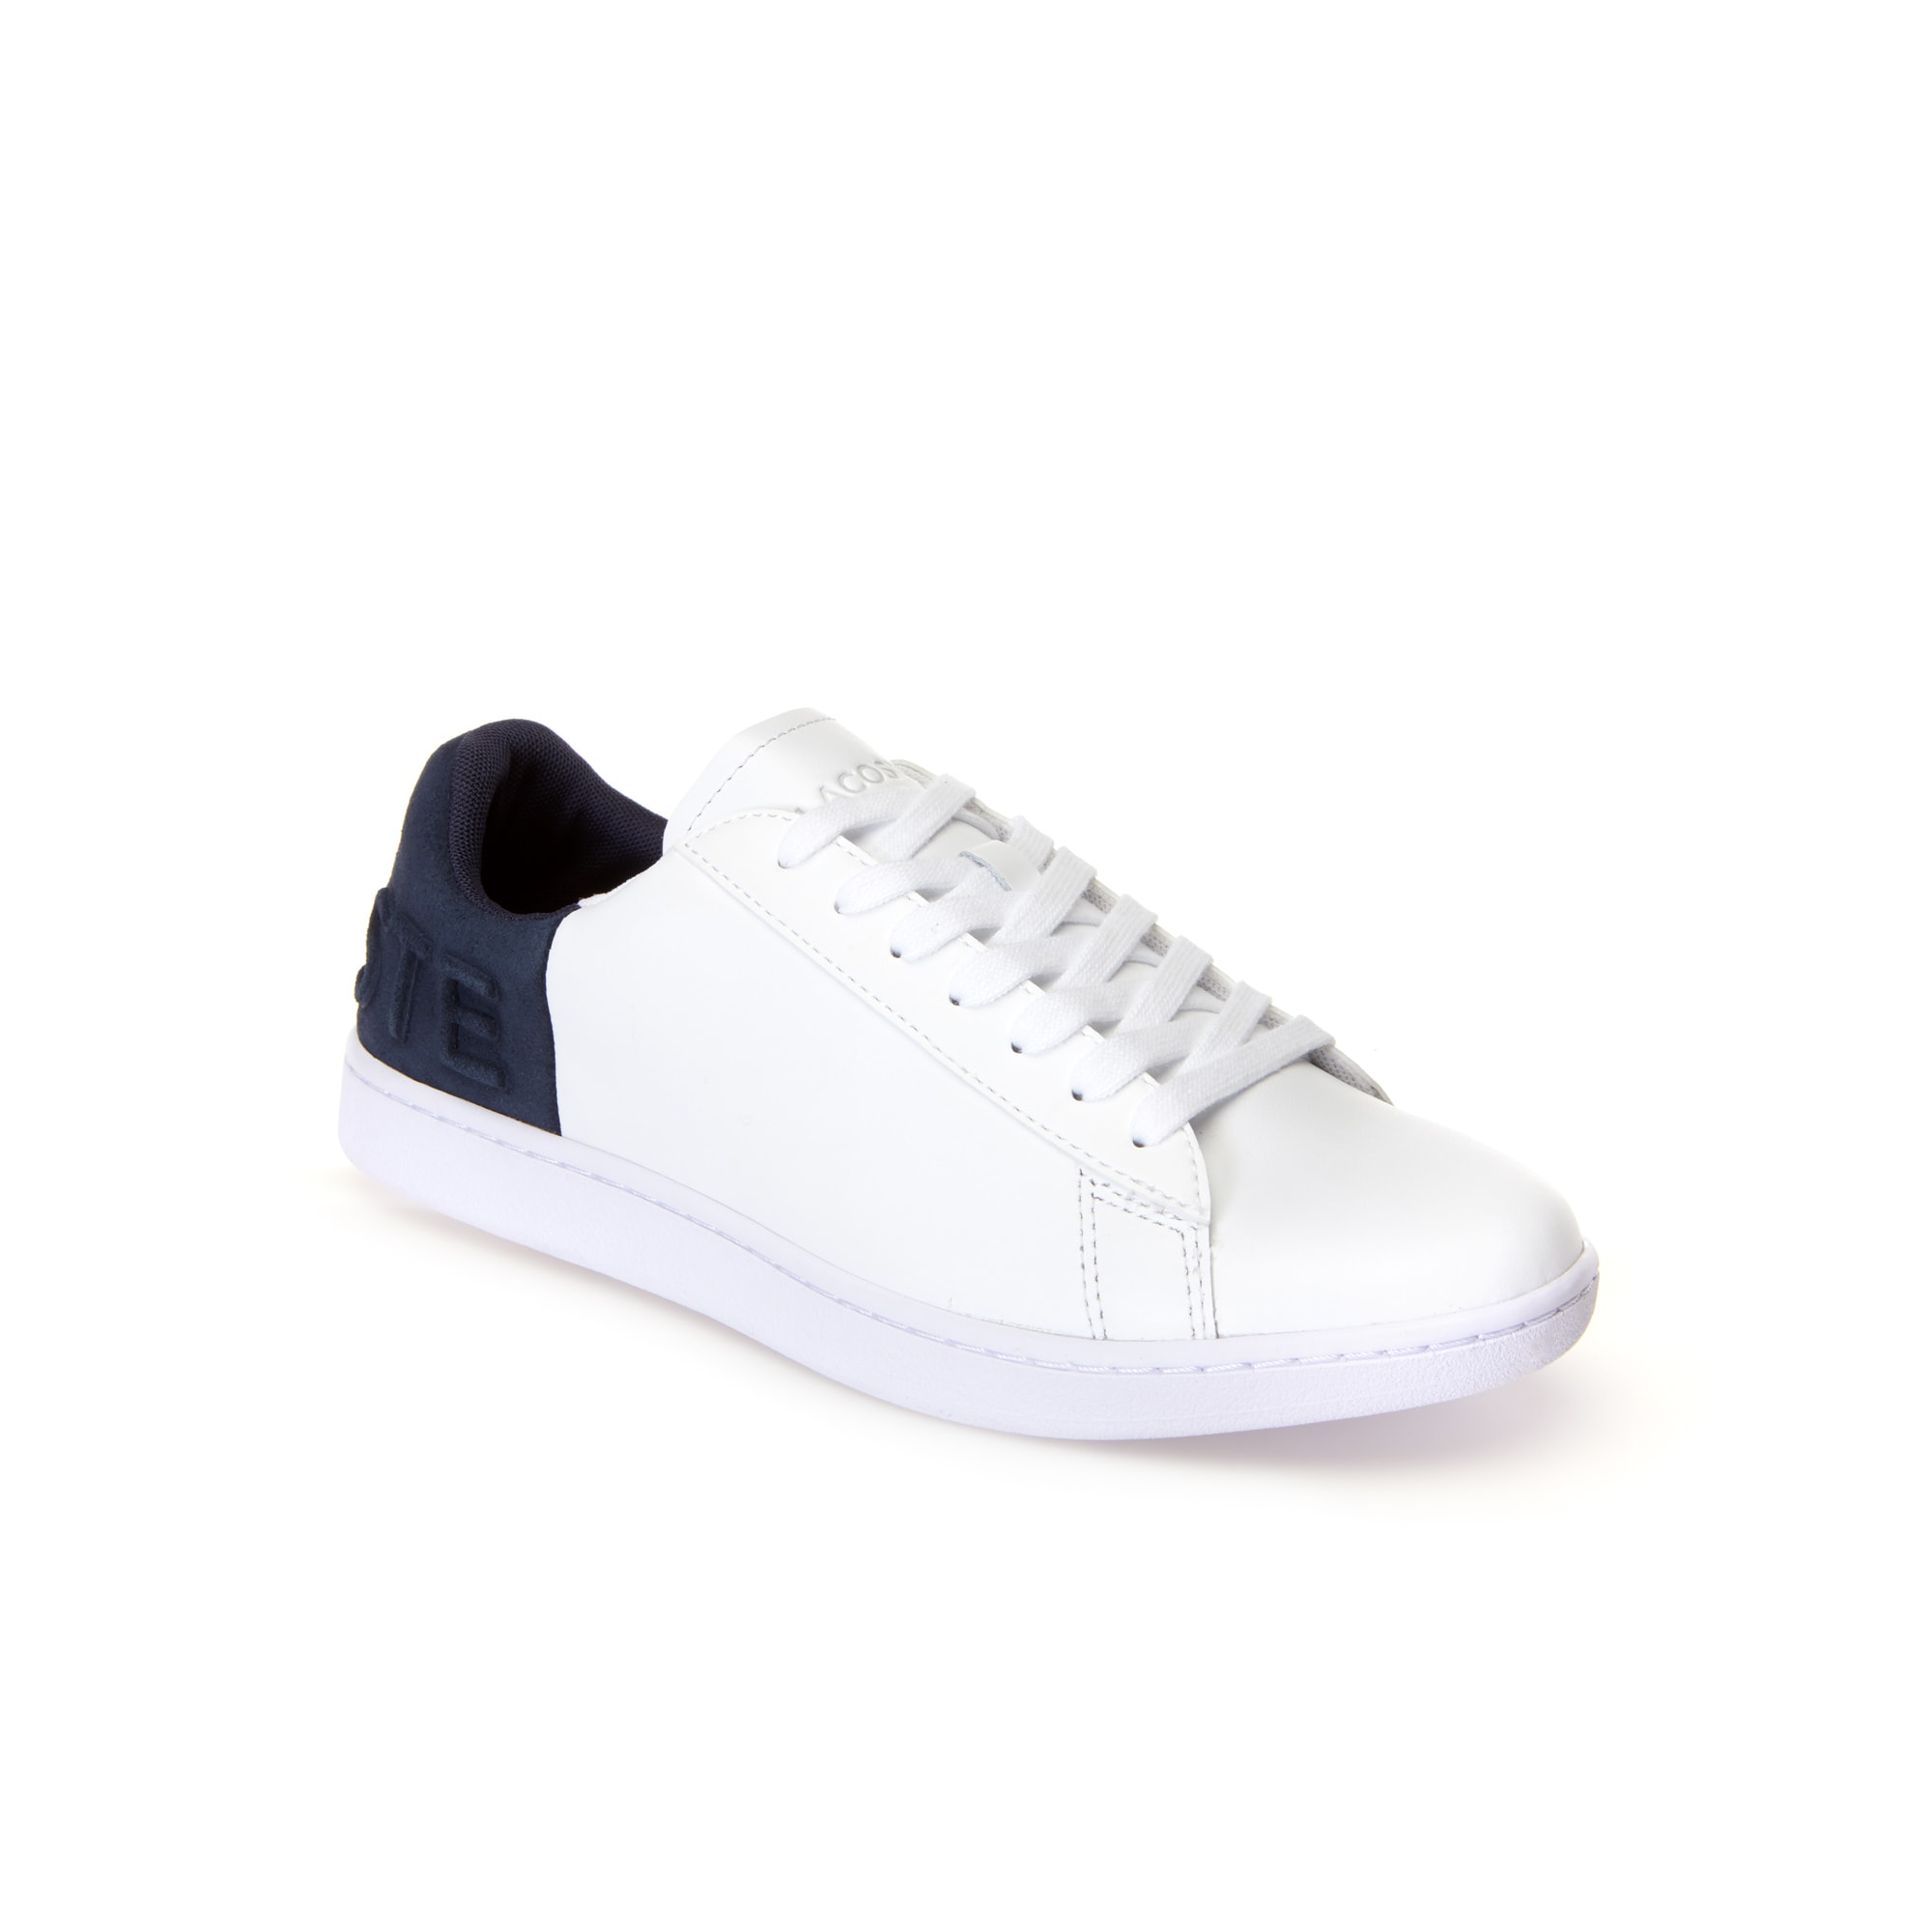 baaae9d30 Women s Carnaby Evo Colour Block Leather Trainers ...